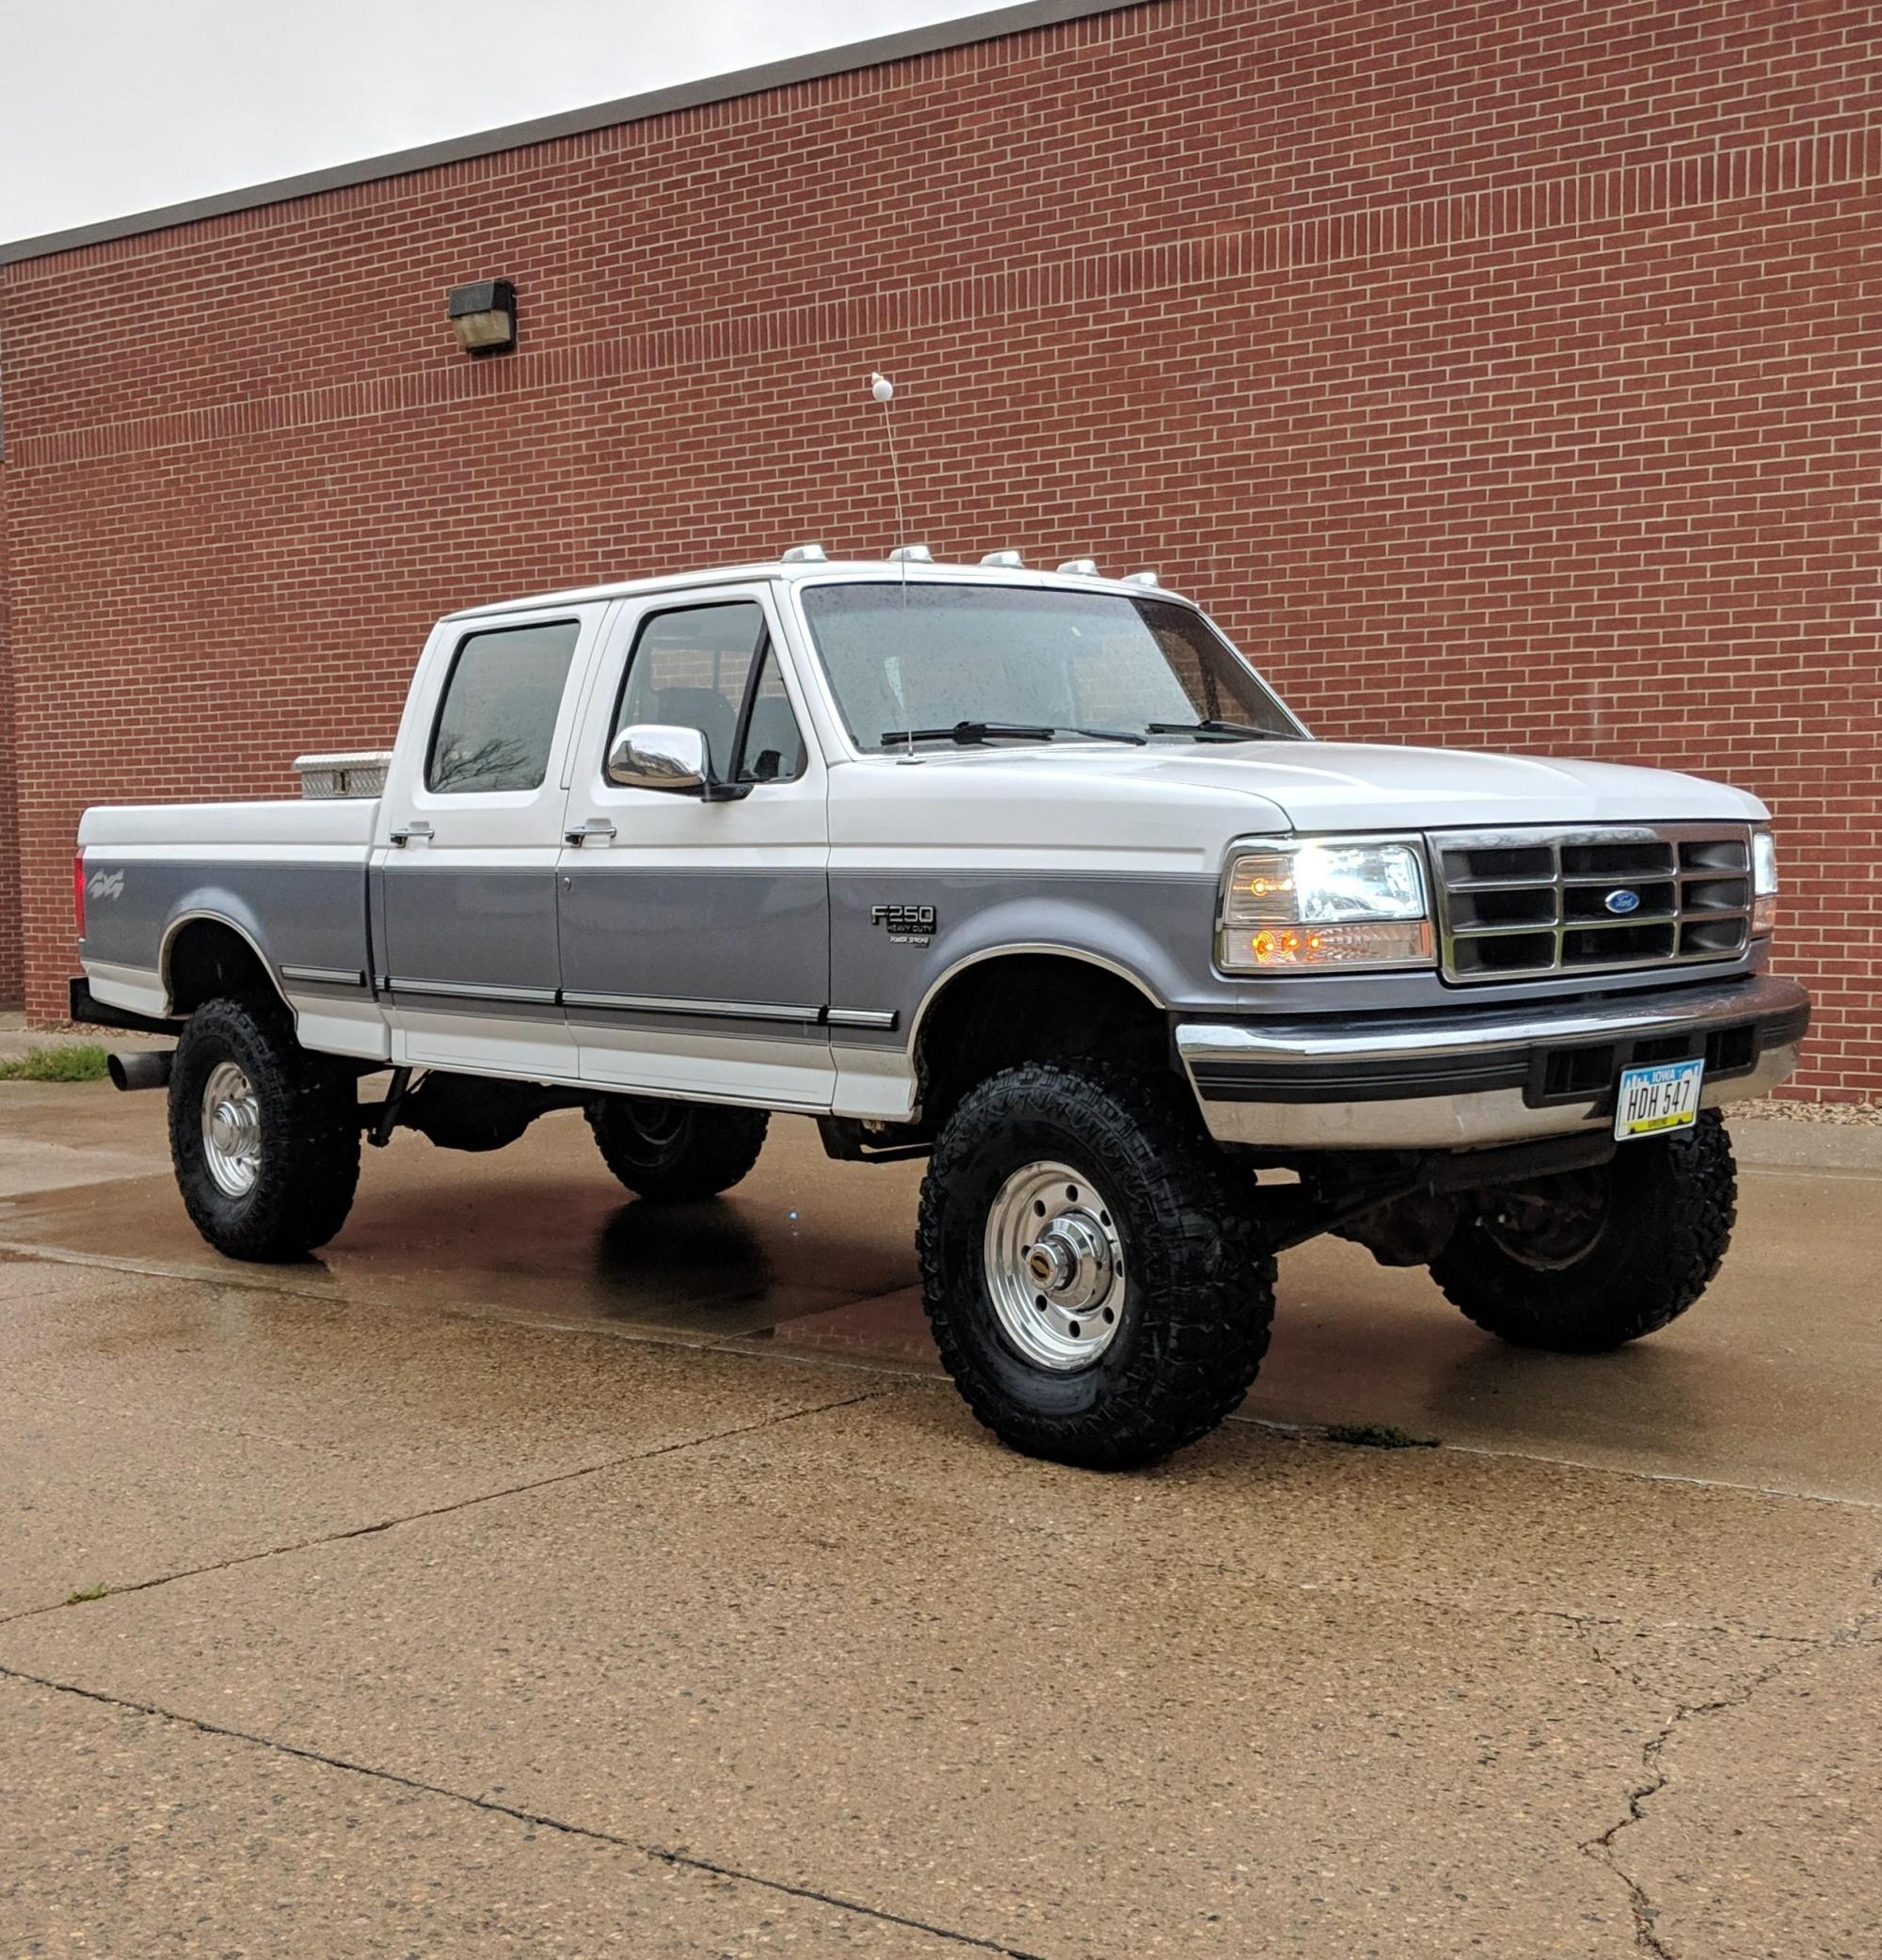 hight resolution of my obs 1997 ford powerstroke 7 3 i just did the lift and tires a few days ago looks pretty good for being a 205k mile midwest truck